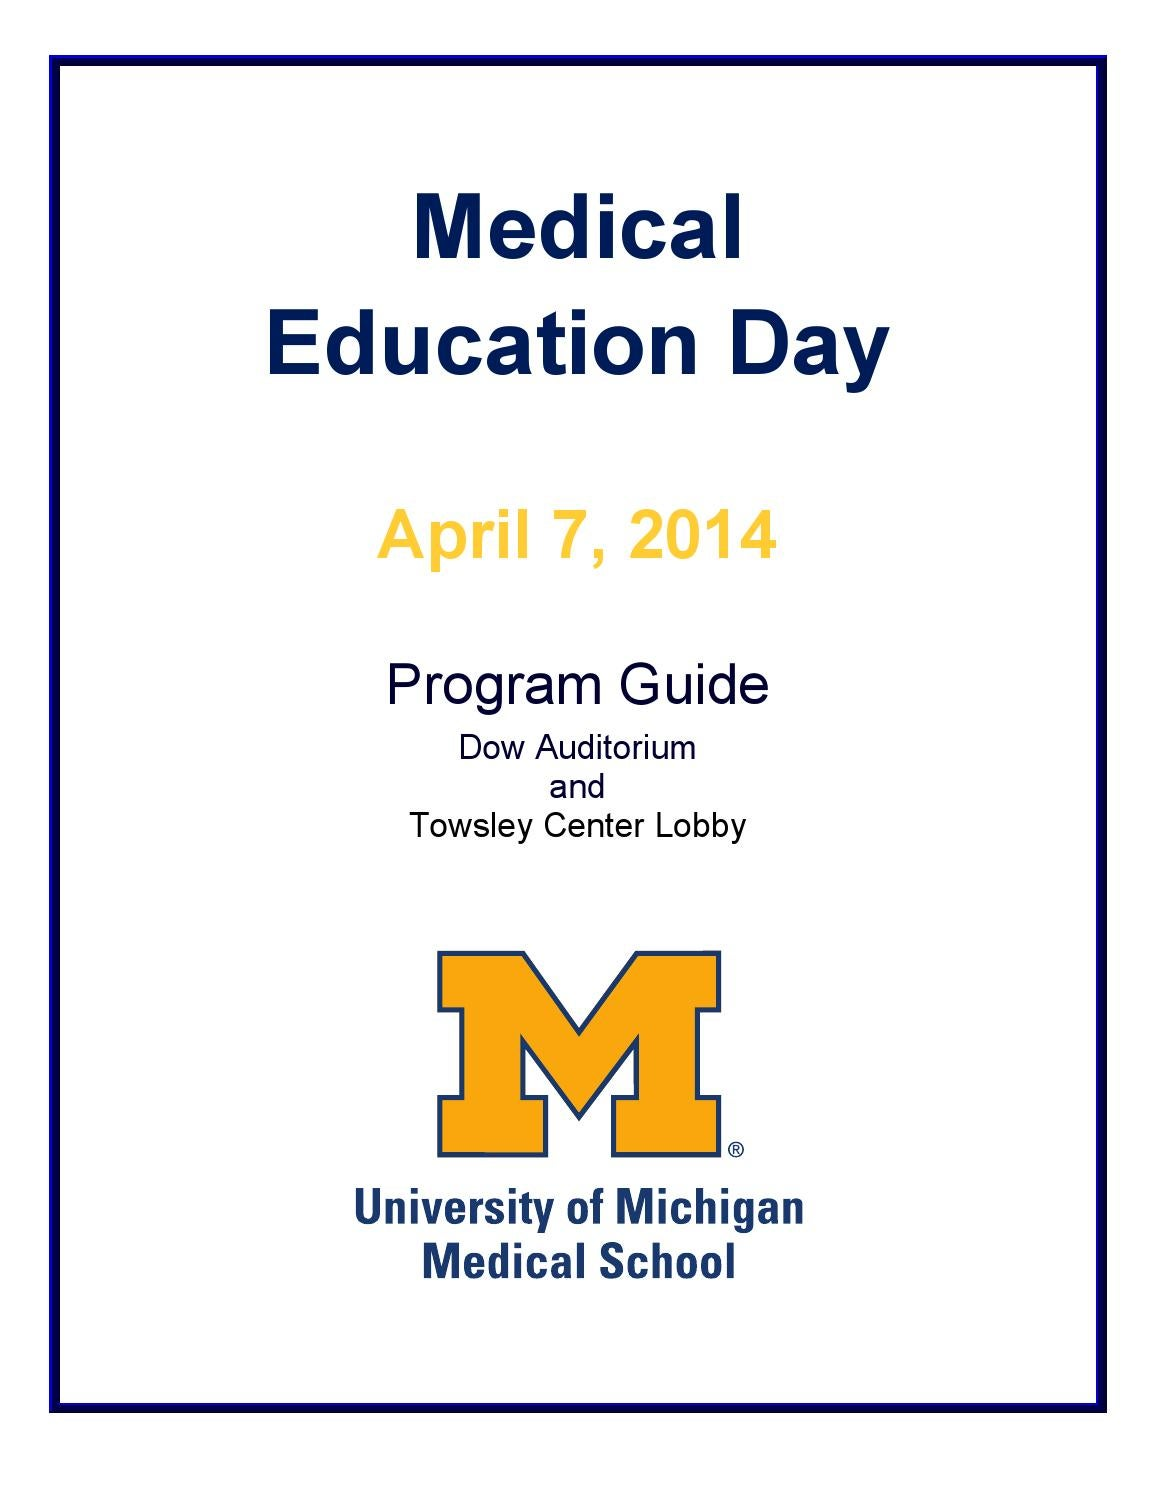 Medical Education Day (